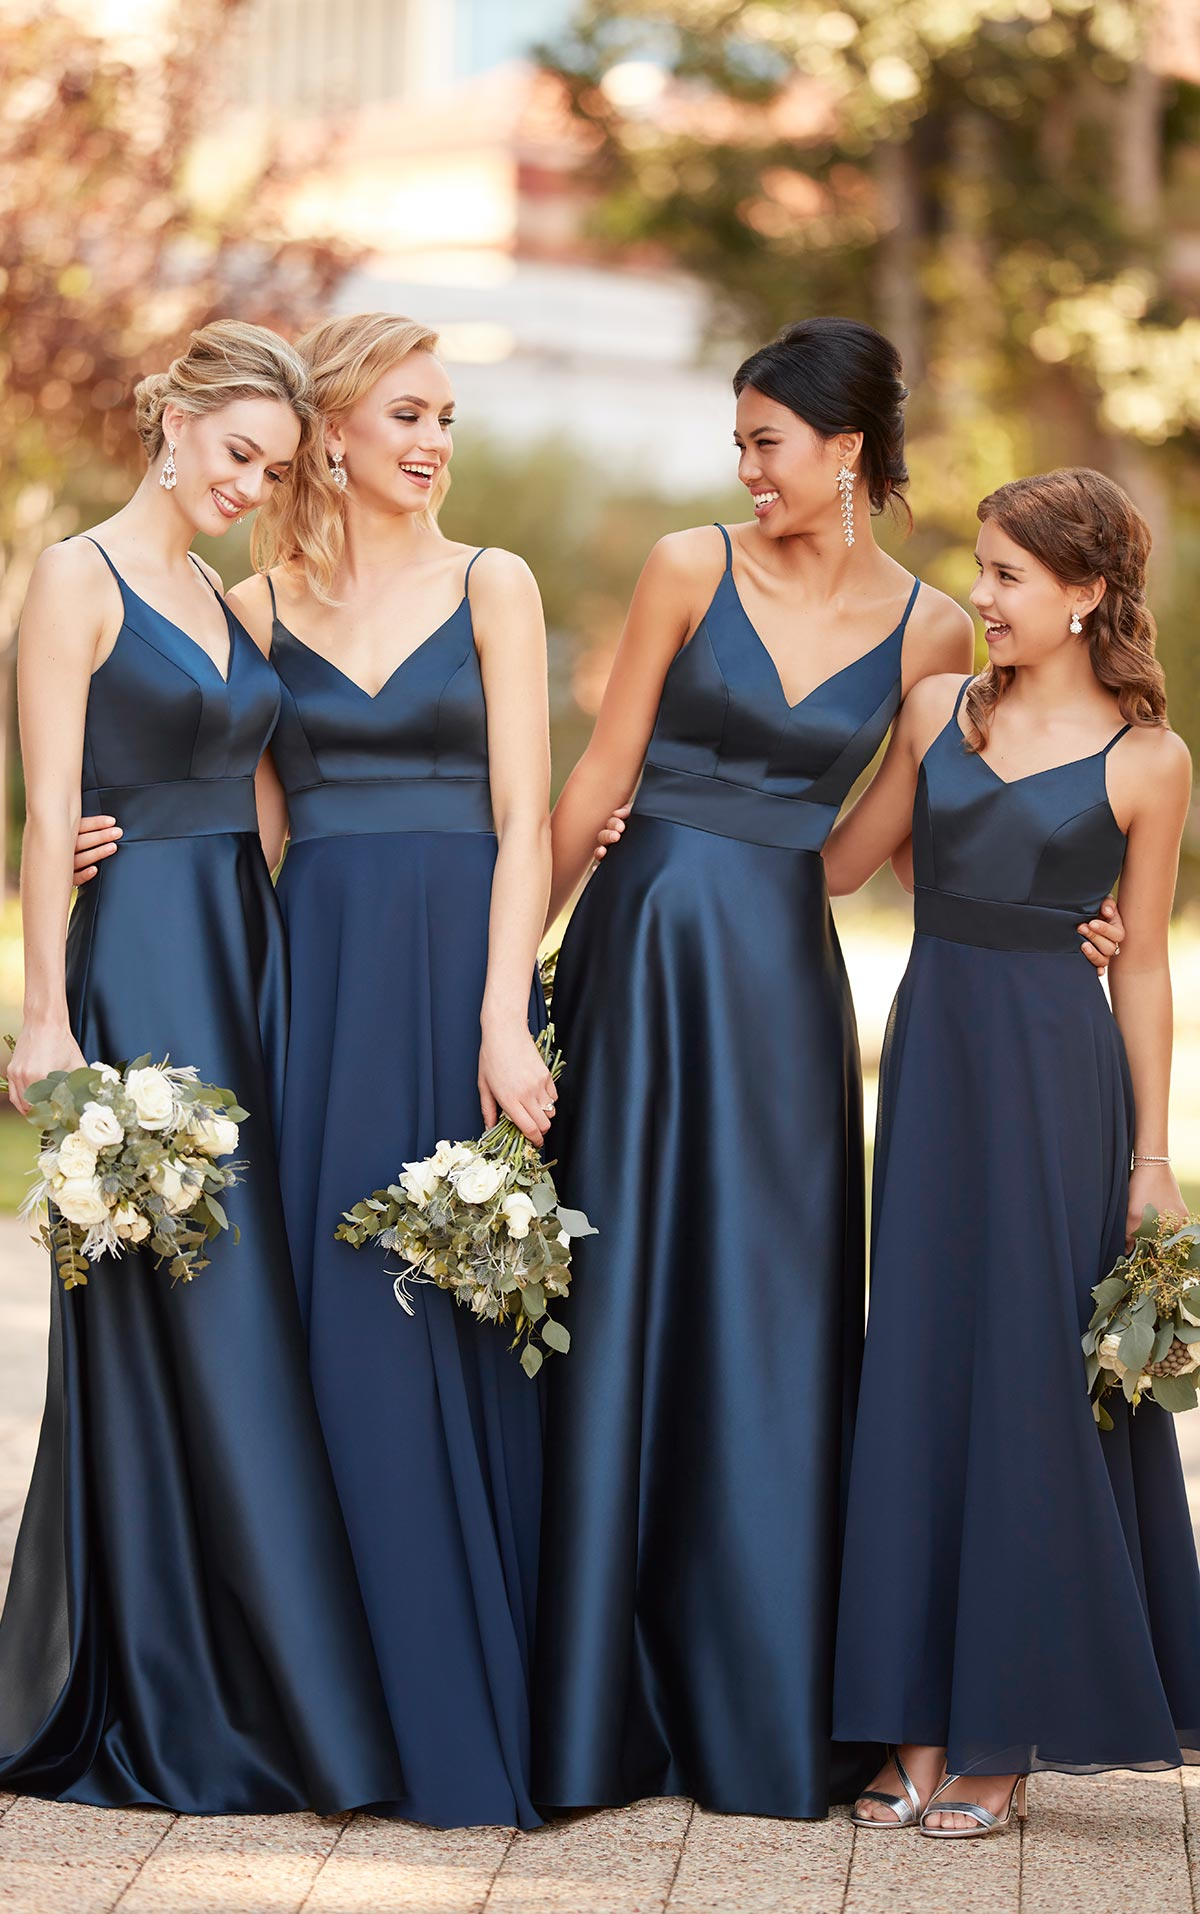 f4aa510ed7b An image of four girls in navy blue Sorella Vita bridesmaid dresses.